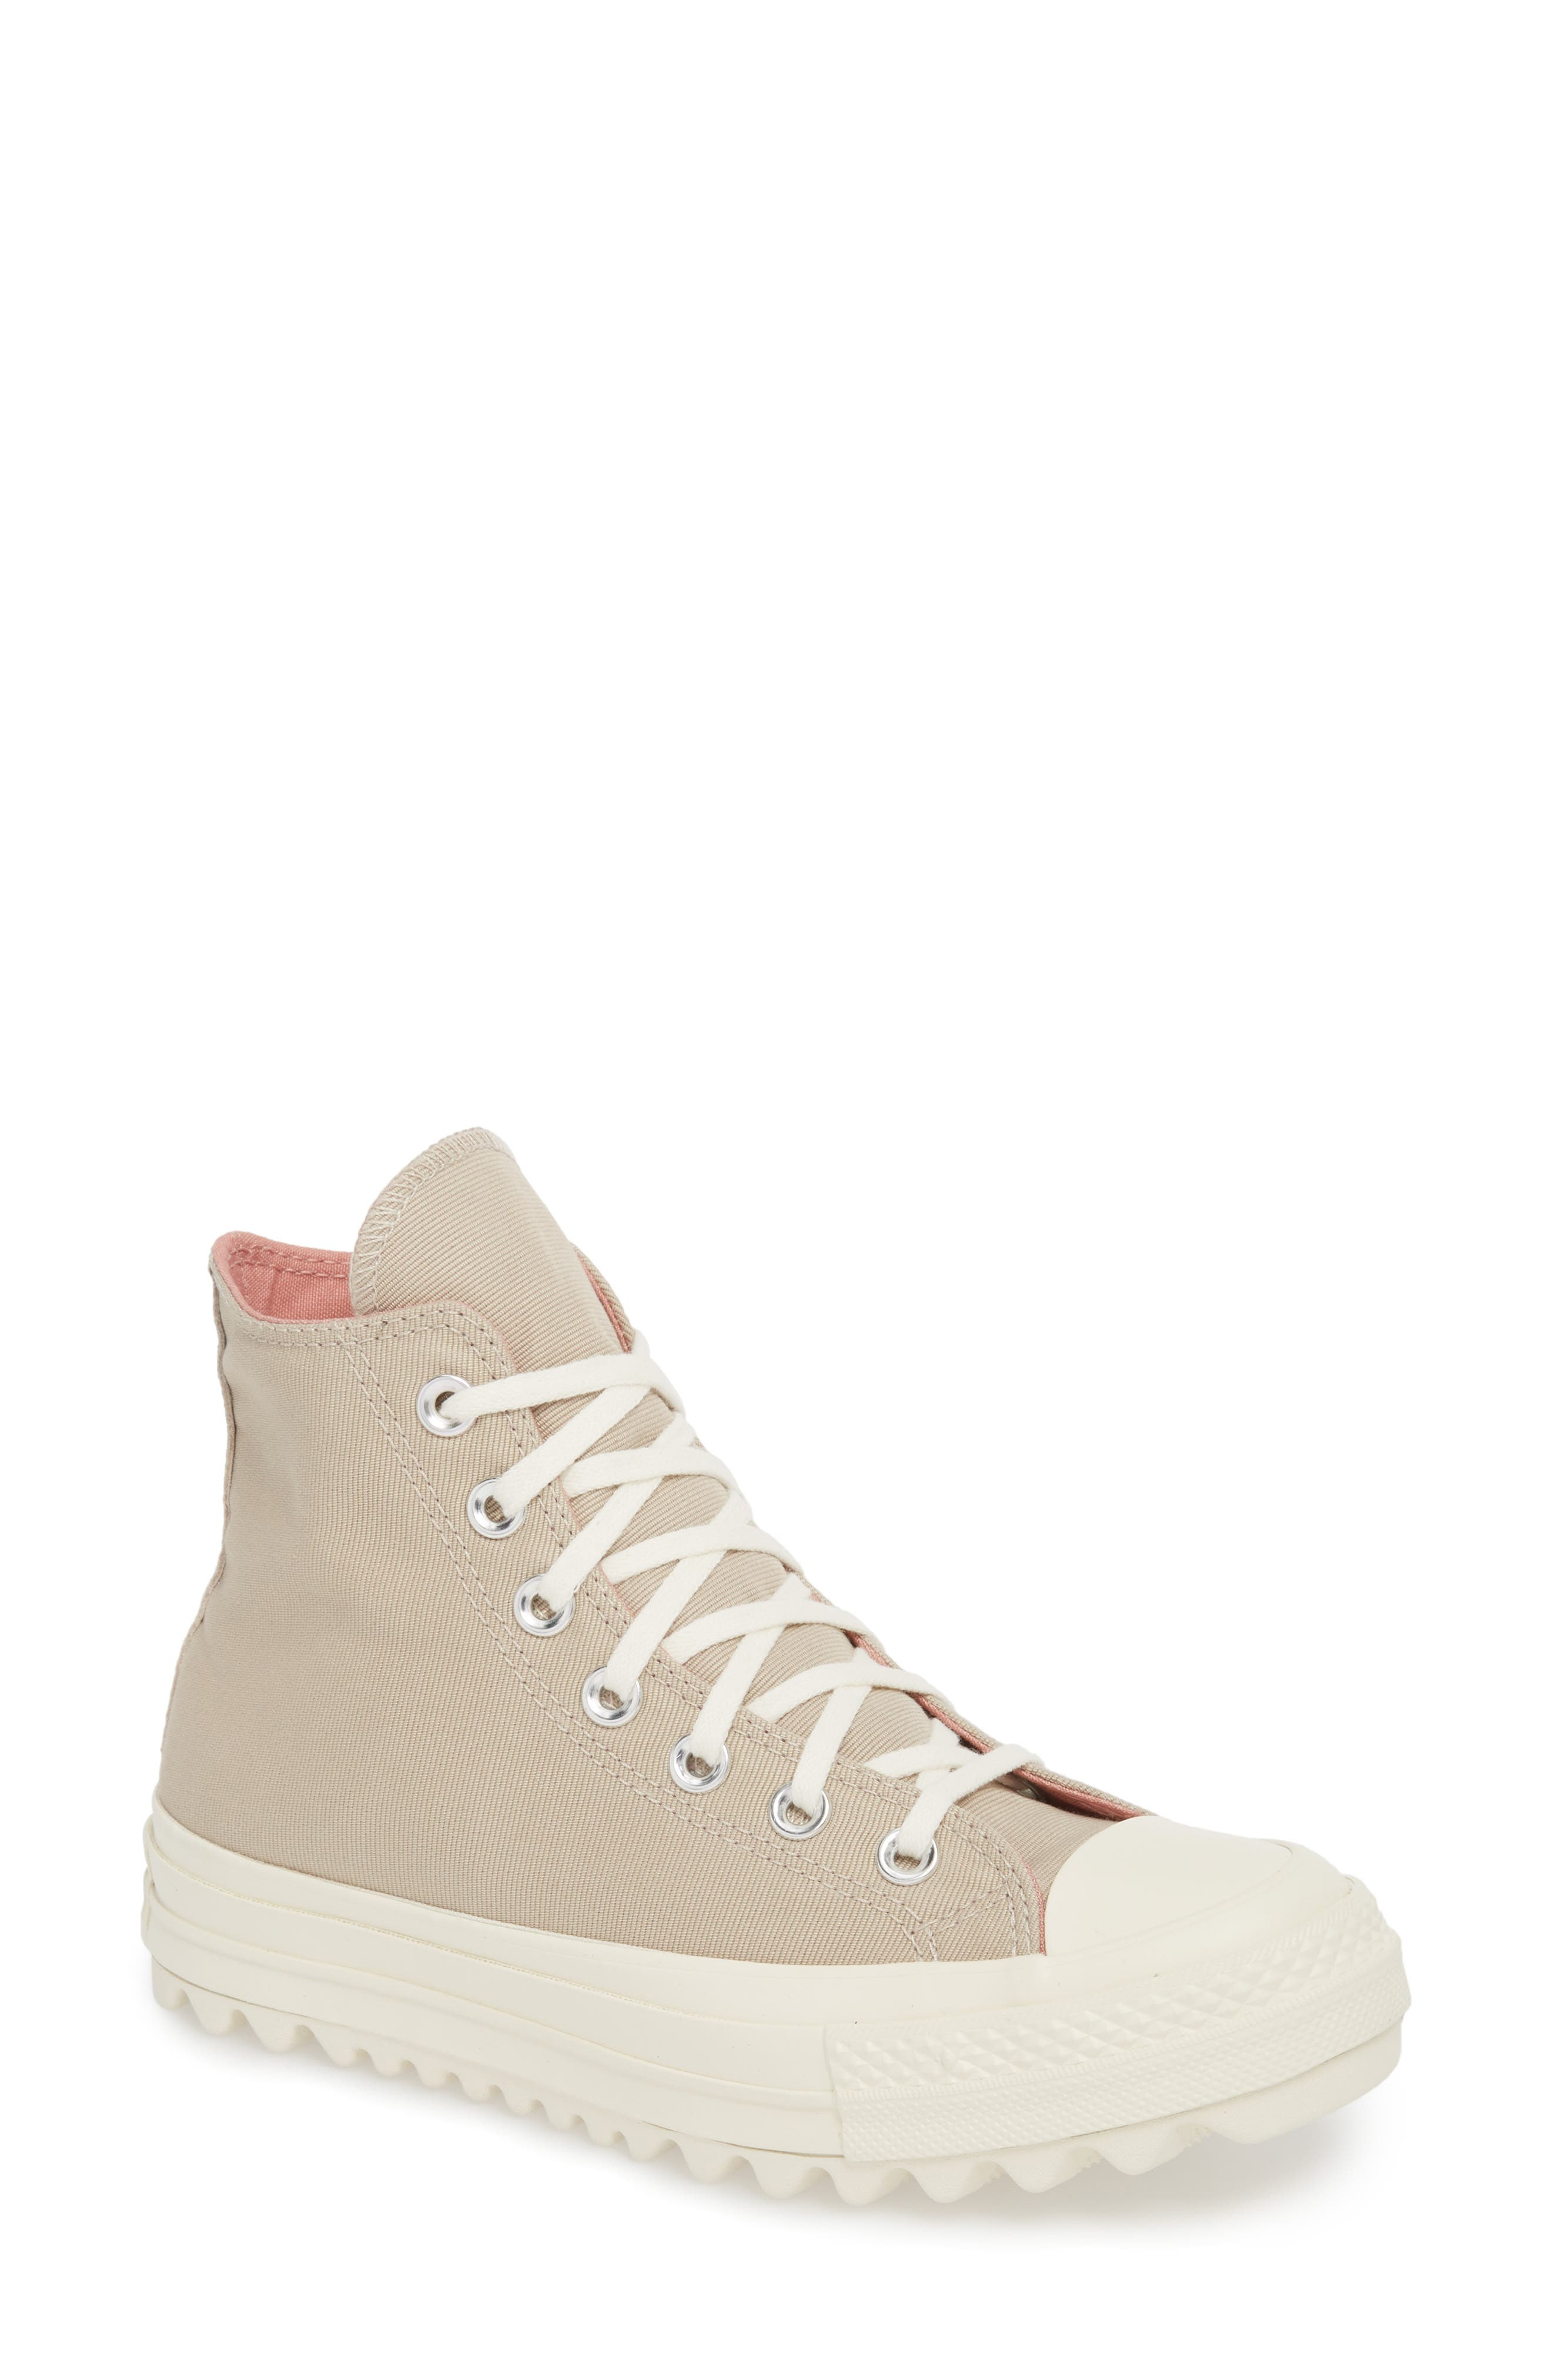 Chuck Taylor<sup>®</sup> All Star<sup>®</sup> Ripple High Top Sneaker,                             Main thumbnail 1, color,                             Papyrus Suede